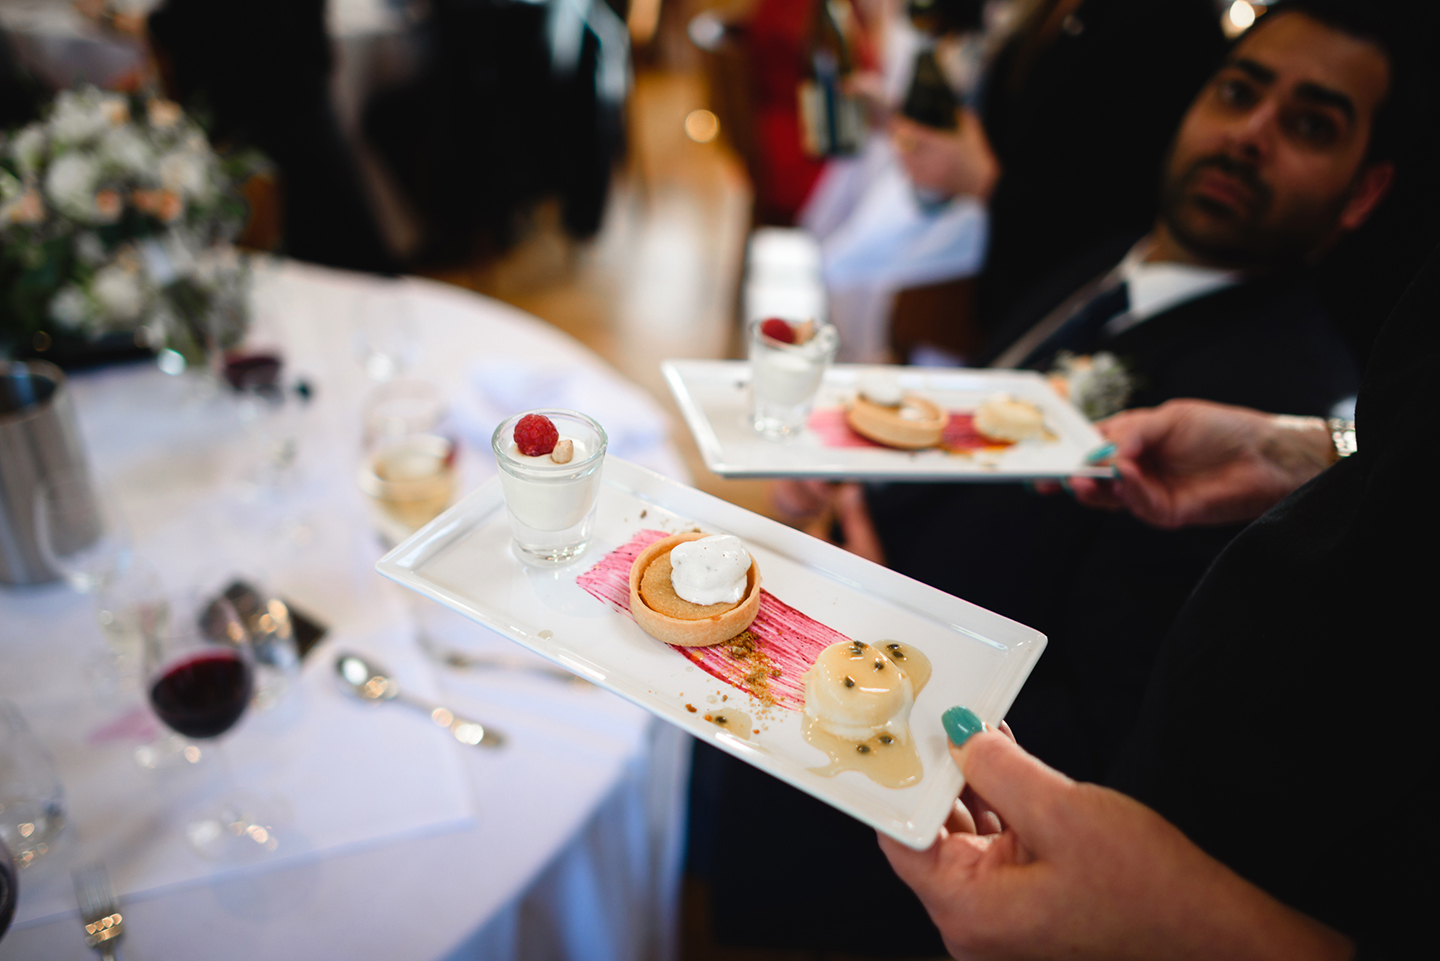 Saving the best until last guests enjoy a trio of desserts from the expert caterers Galloping Gourmet